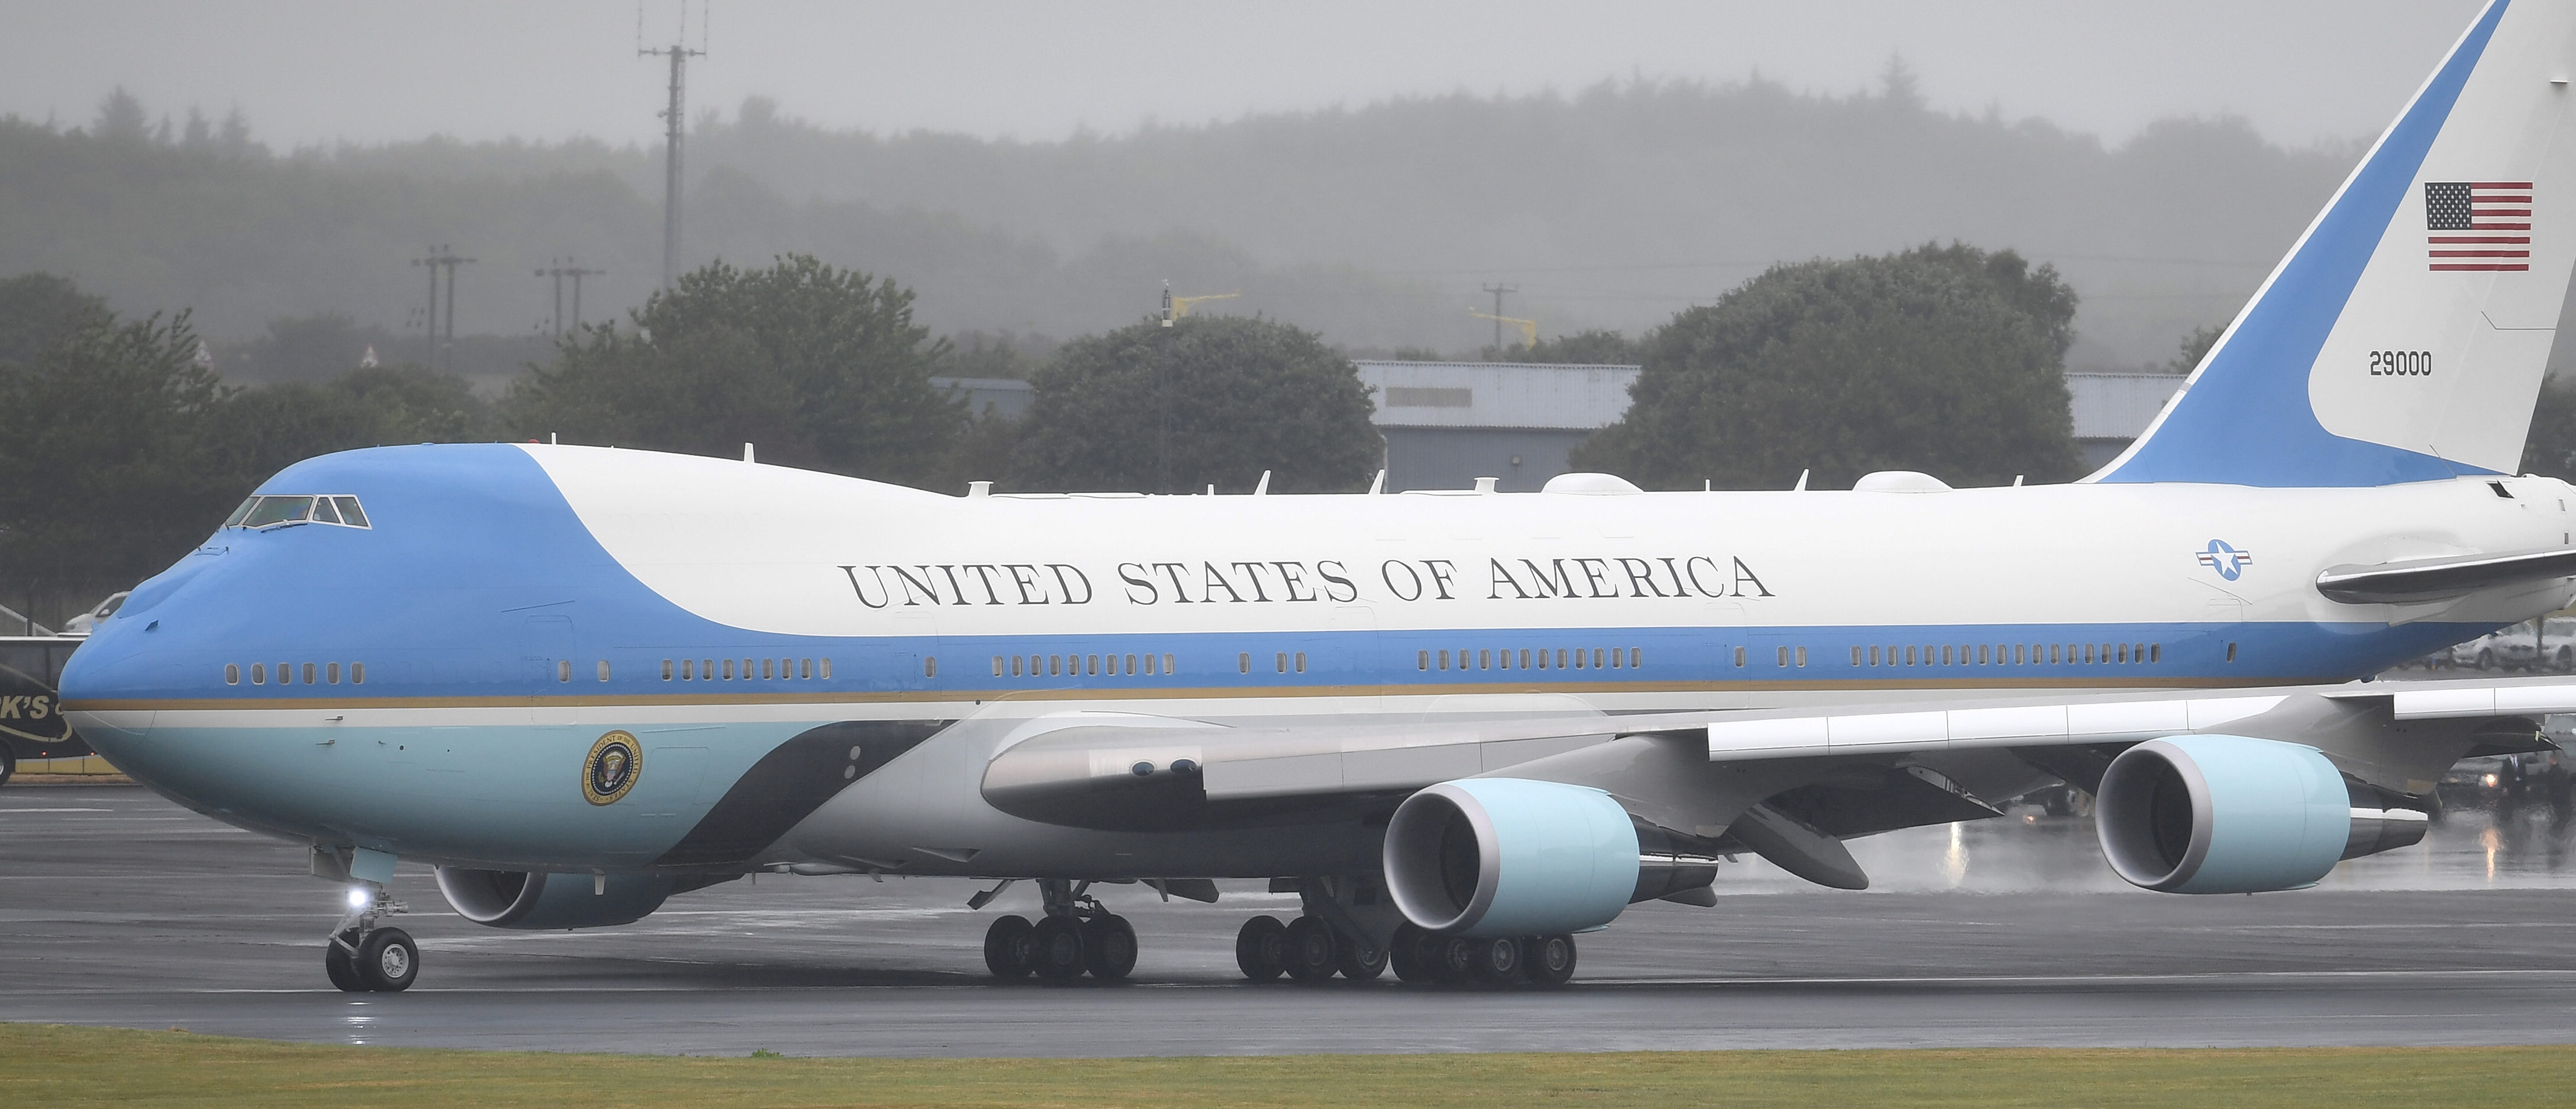 GLASGOW, SCOTLAND - JULY 15: U.S. President, Donald Trump and First Lady, Melania Trump depart from Glasgow Prestwick Airport aboard Air Force One, following the U.S. President's first official visit to the United Kingdom on July 15, 2018 in Glasgow, Scotland. The President of the United States and First Lady, Melania Trump depart from the UK, headed for Helsinki, Finland. Whilst in Helsinki, President Trump will hold a meeting with Russian President, Vladimir Putin. (Photo by Jeff J Mitchell/Getty Images)